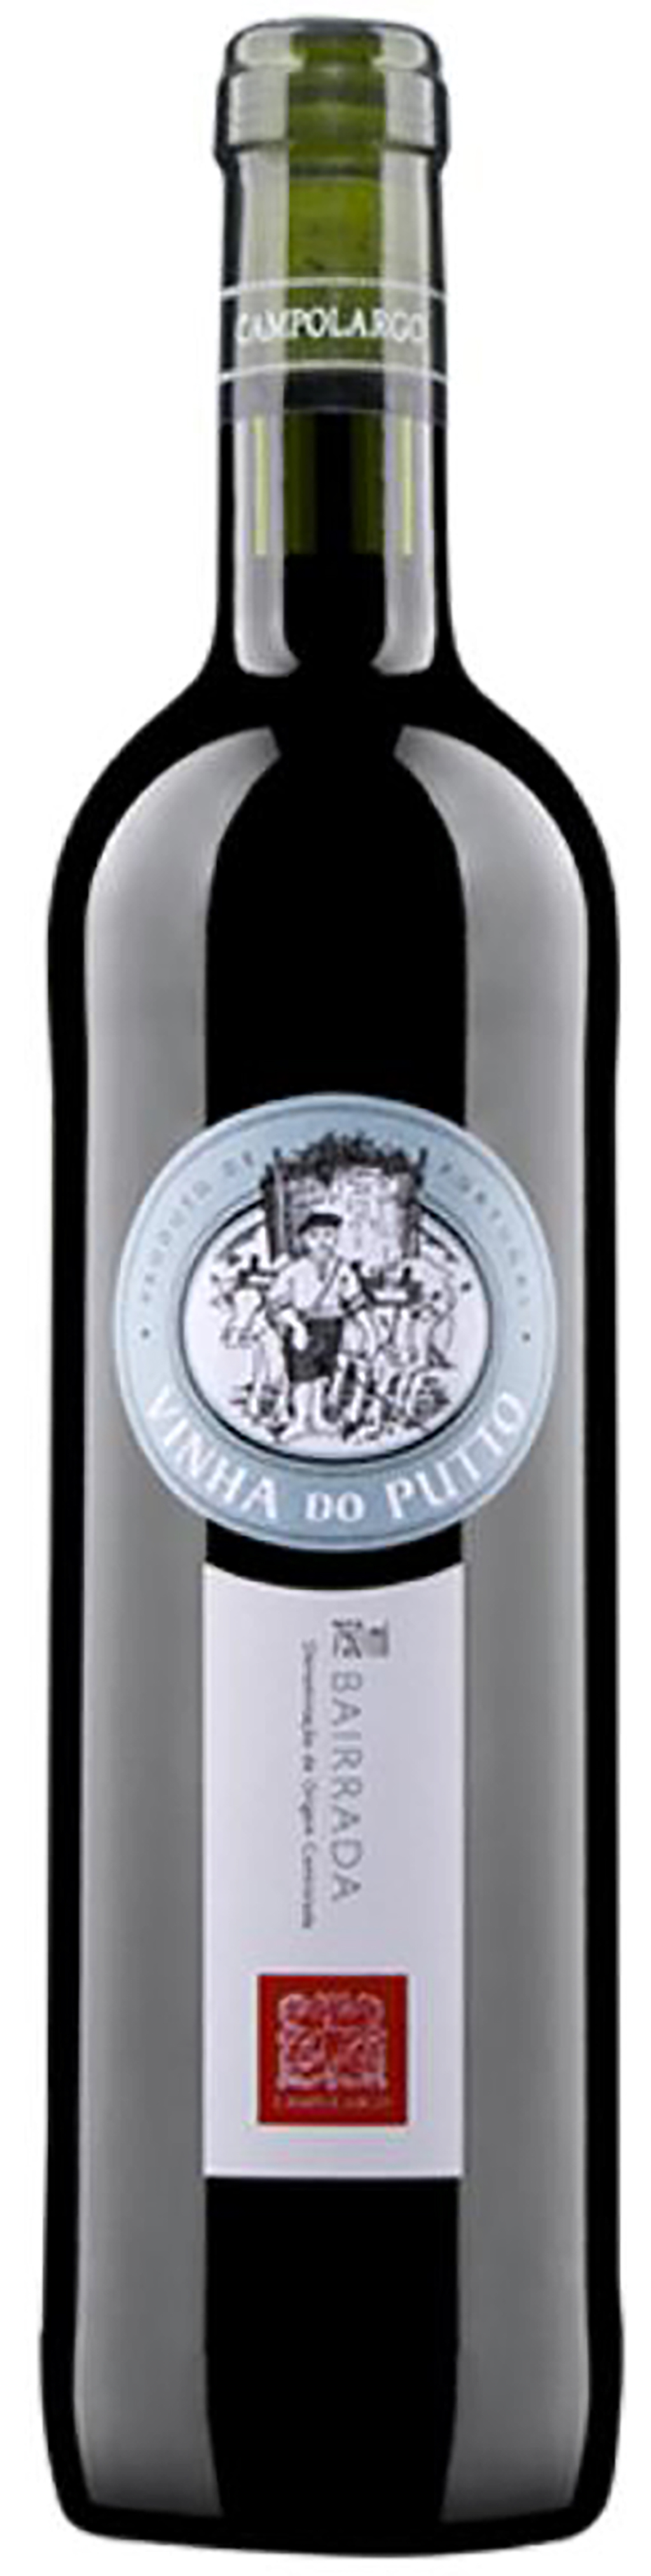 Vinha do Putto Tinto 2012